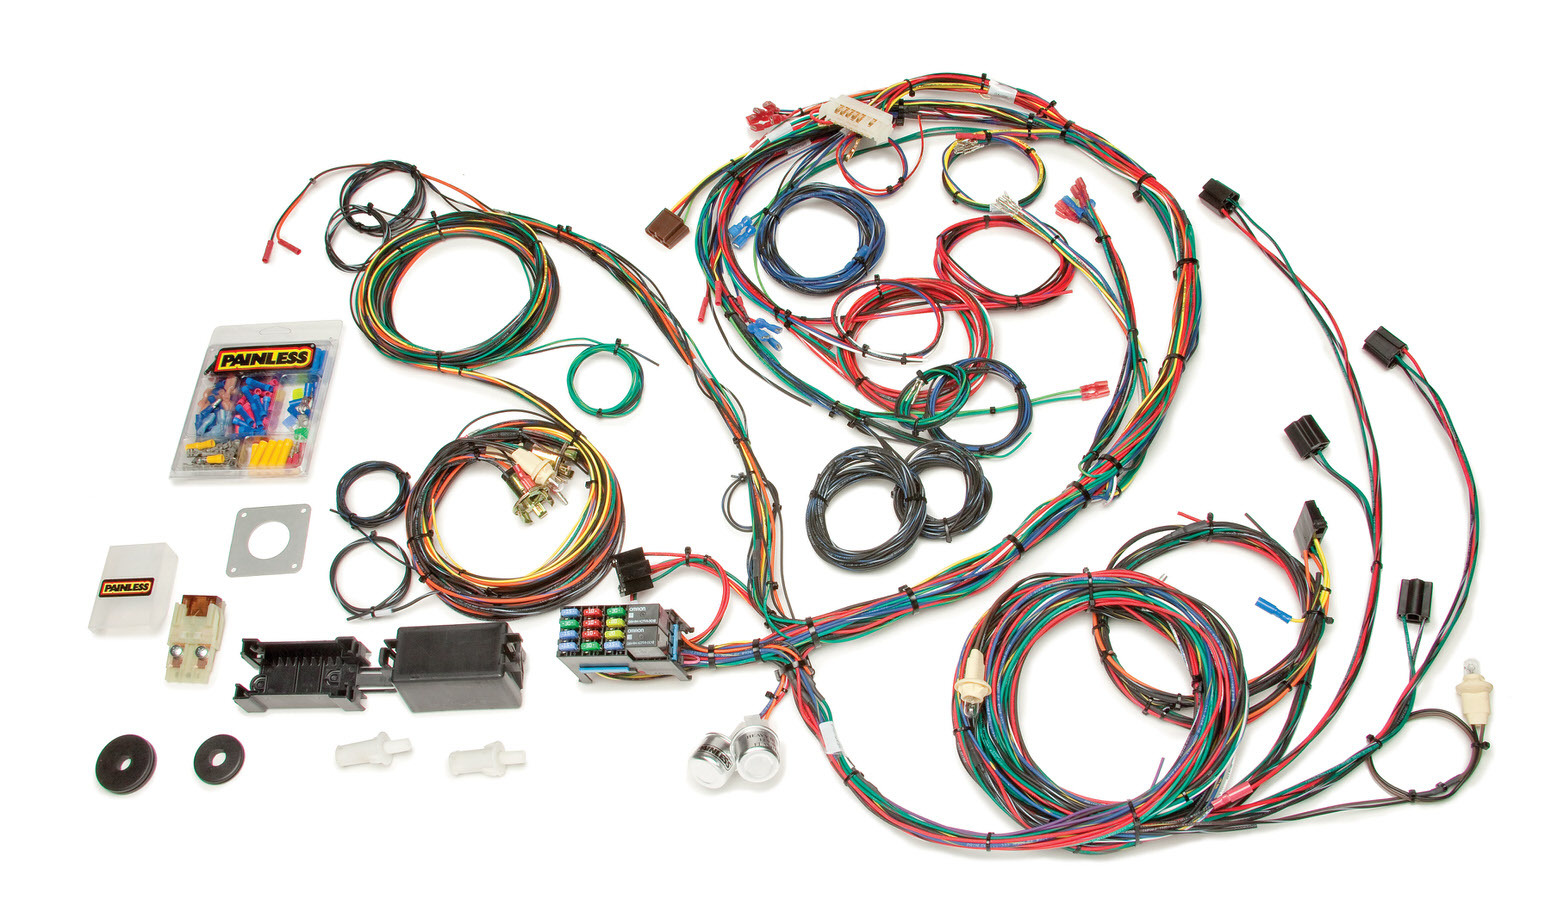 Painless Wiring 20122 Car Wiring Harness, Direct Fit, Complete, 22 Circuit, Ford Mustang 1969-70, Kit